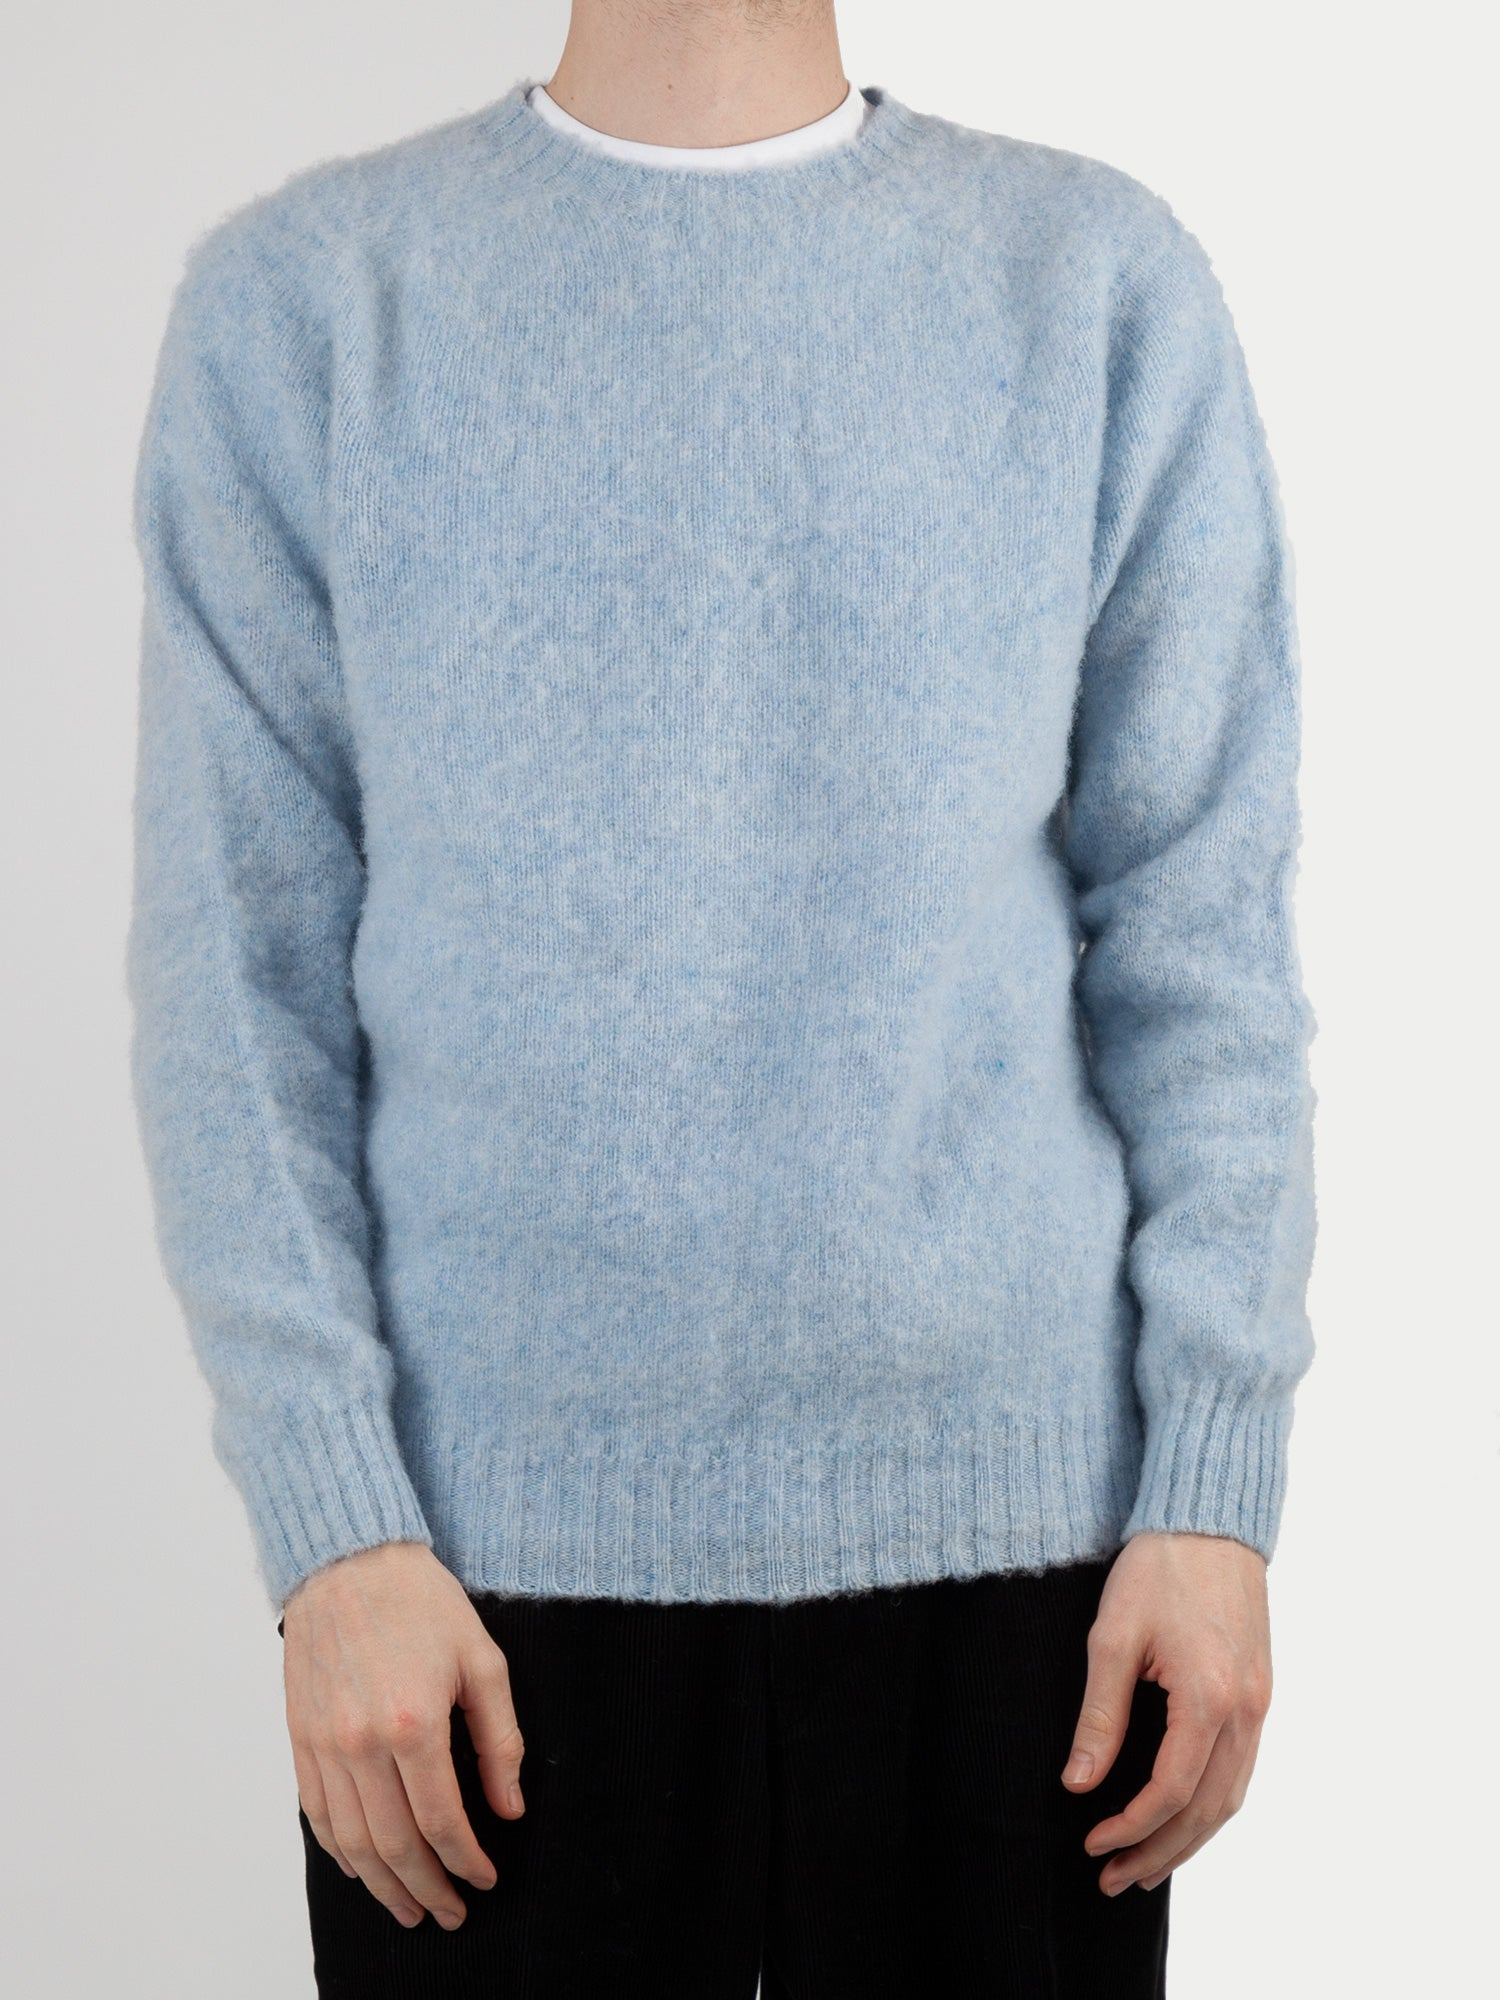 SIXES Supersoft Double Brushed Crew Neck (Powder Blue) 1